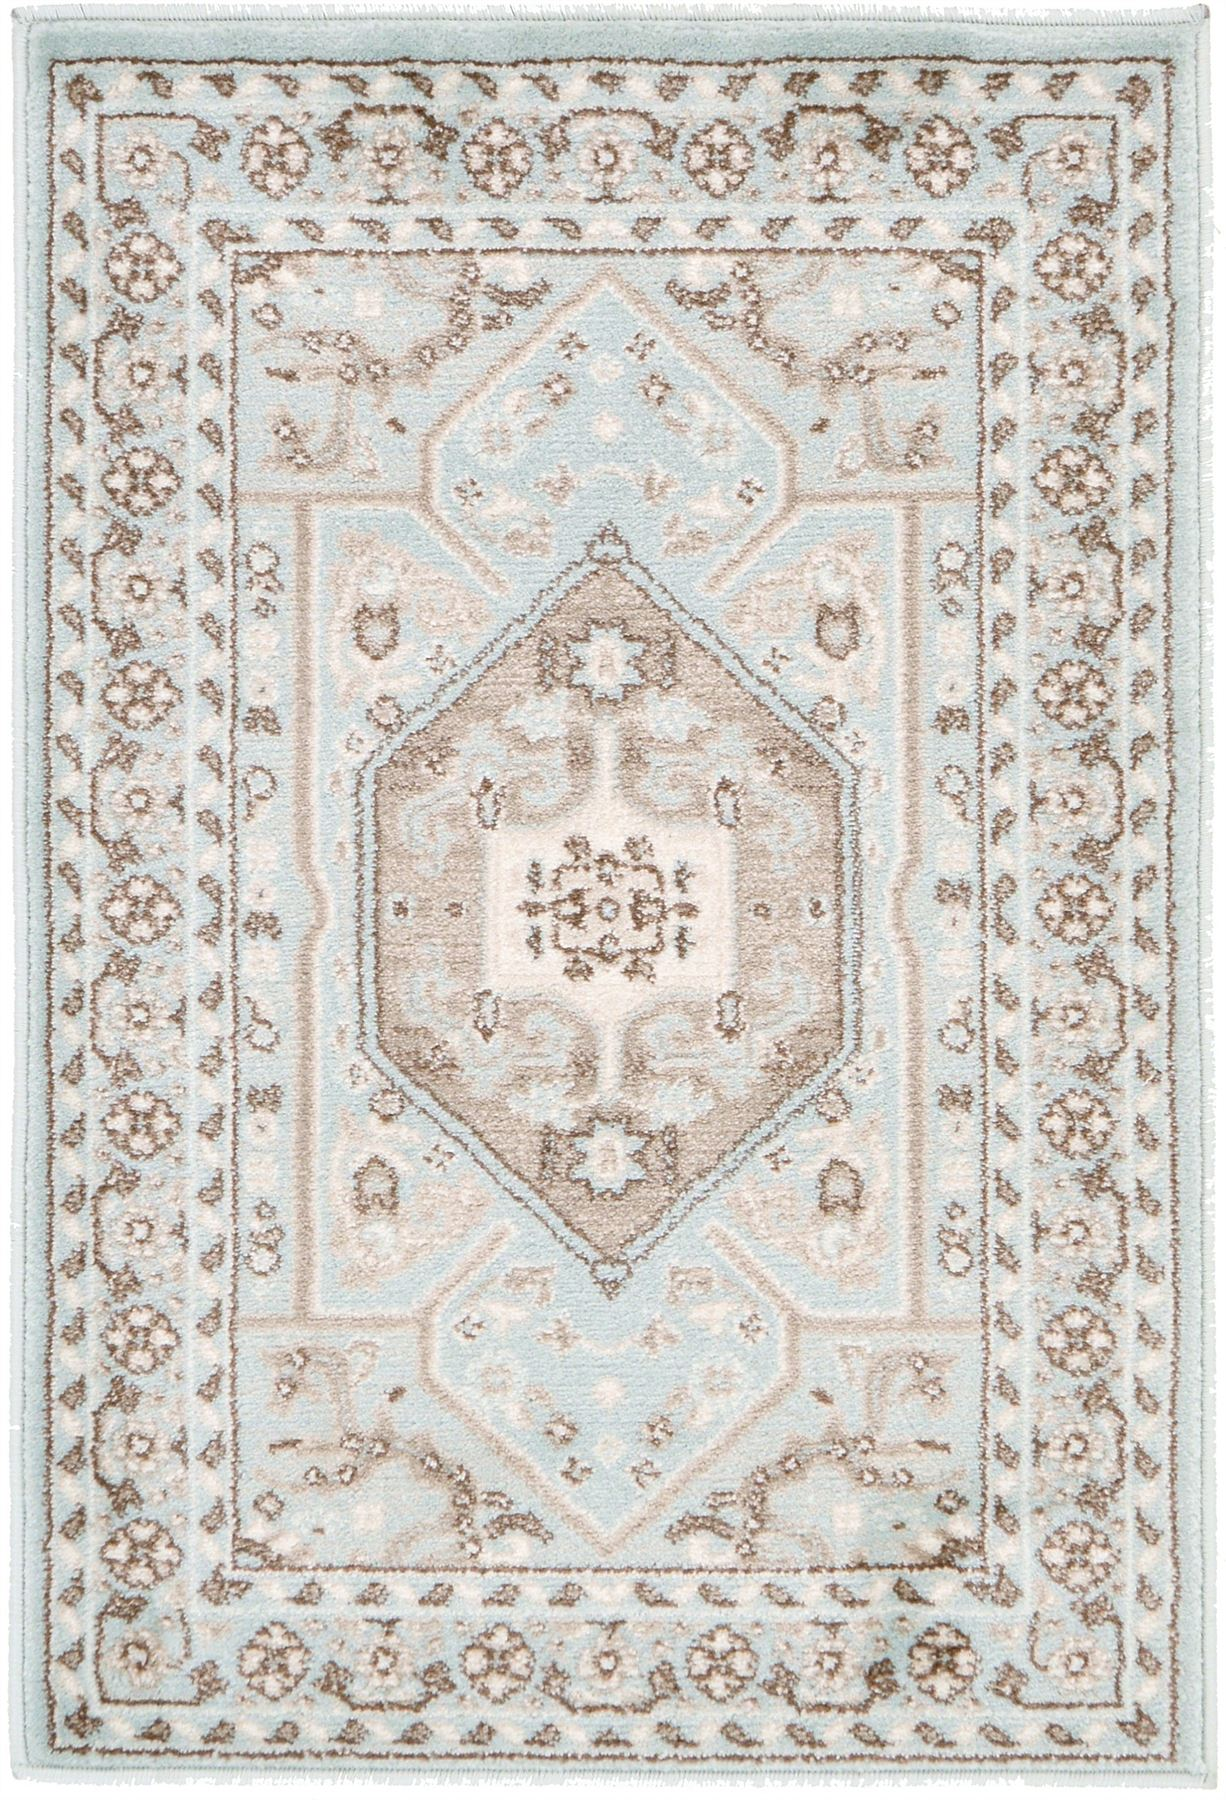 Traditional rug oriental area rug persian style rugs for Area carpets and rugs